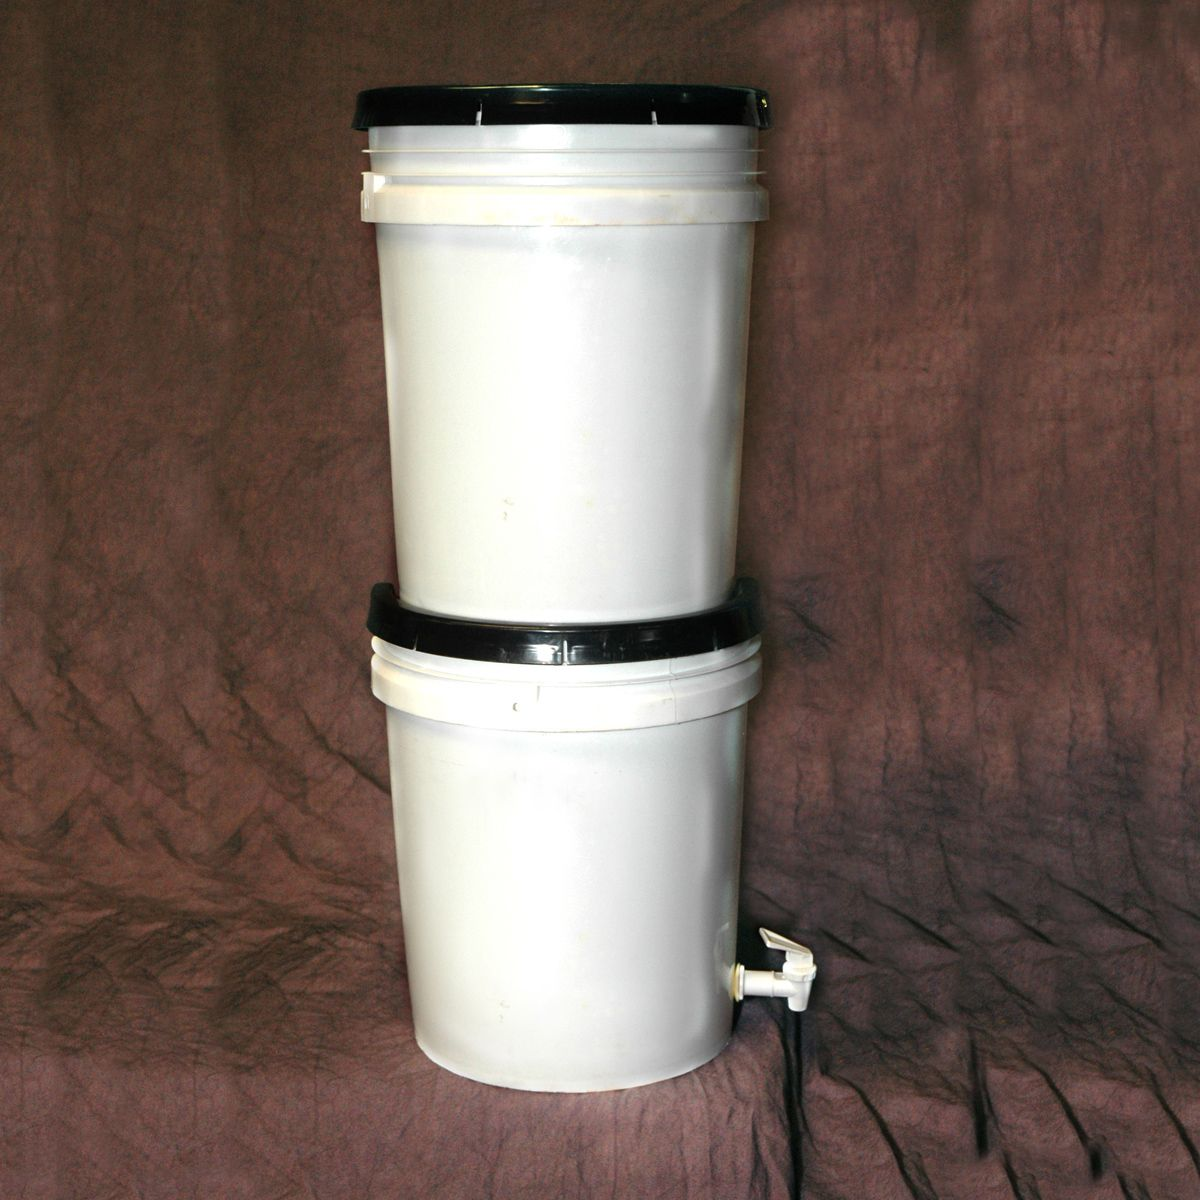 Diy Self Contained Water Filtration System Awesome Water Filtration System Portable Water Filter Water Storage